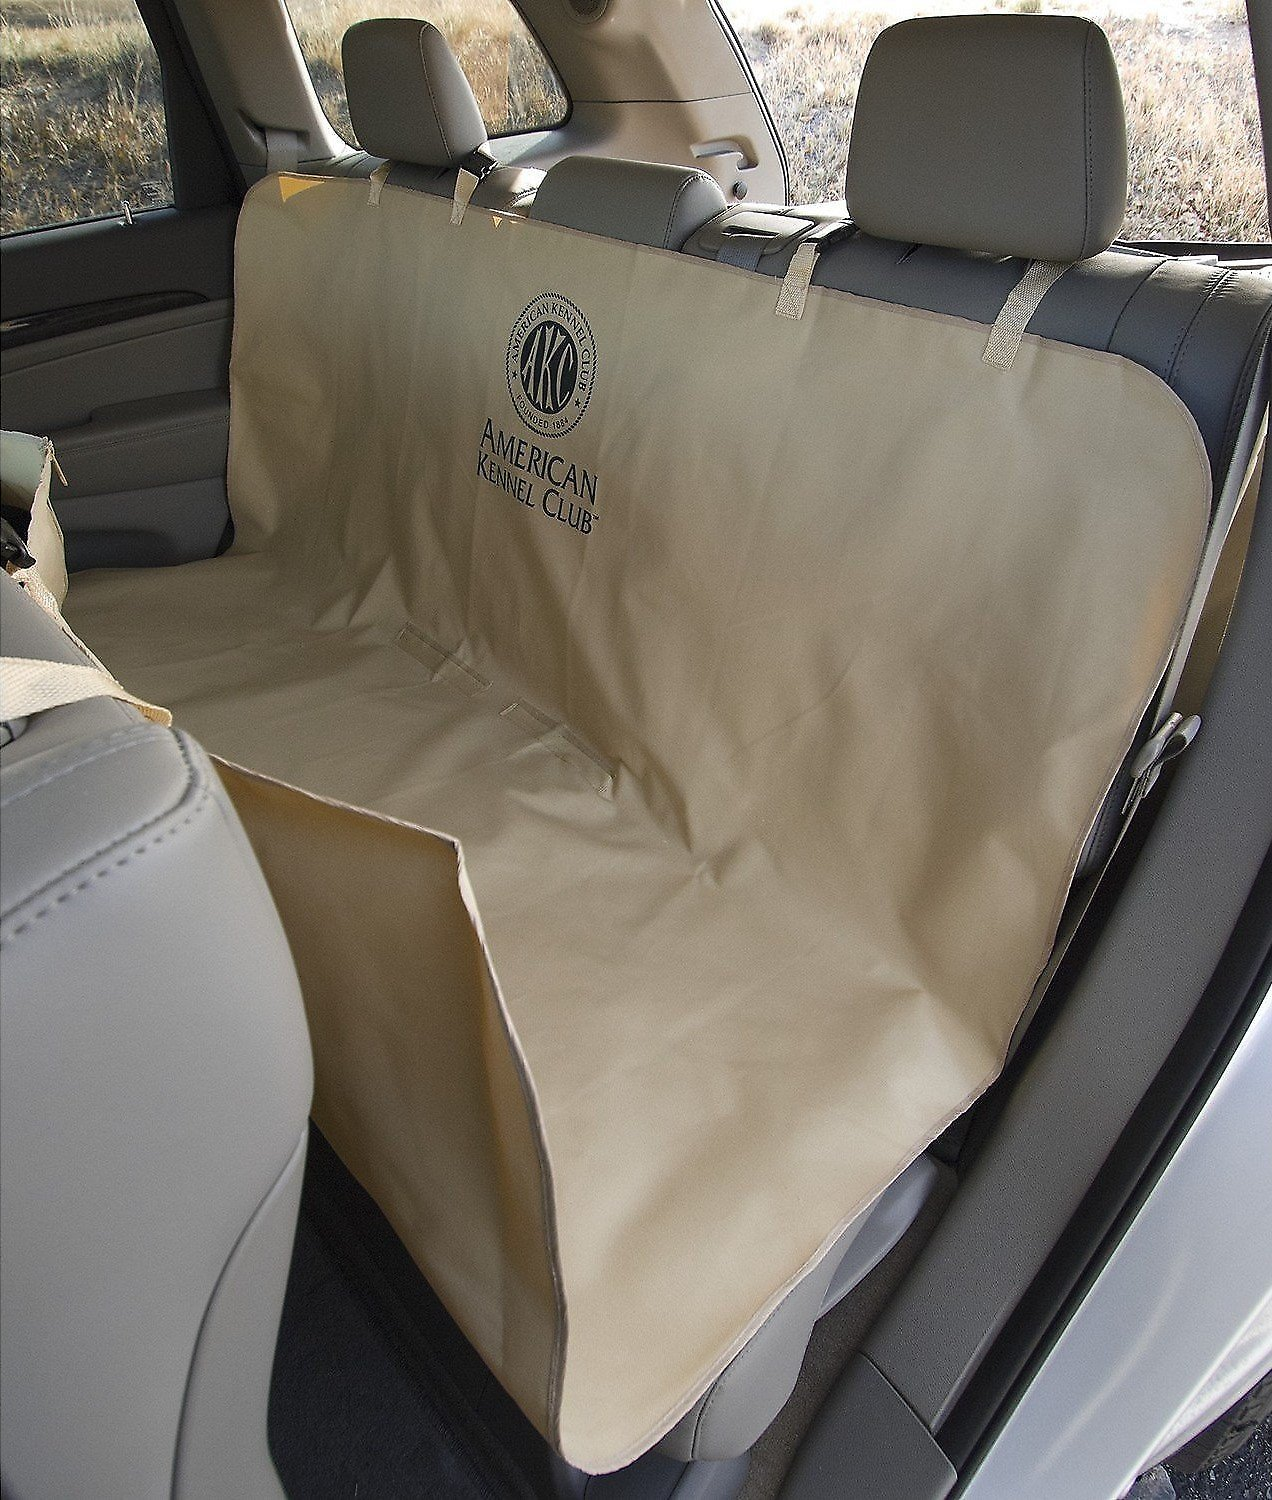 Fabulous American Kennel Club Pet Car Seat Cover Tan Alphanode Cool Chair Designs And Ideas Alphanodeonline